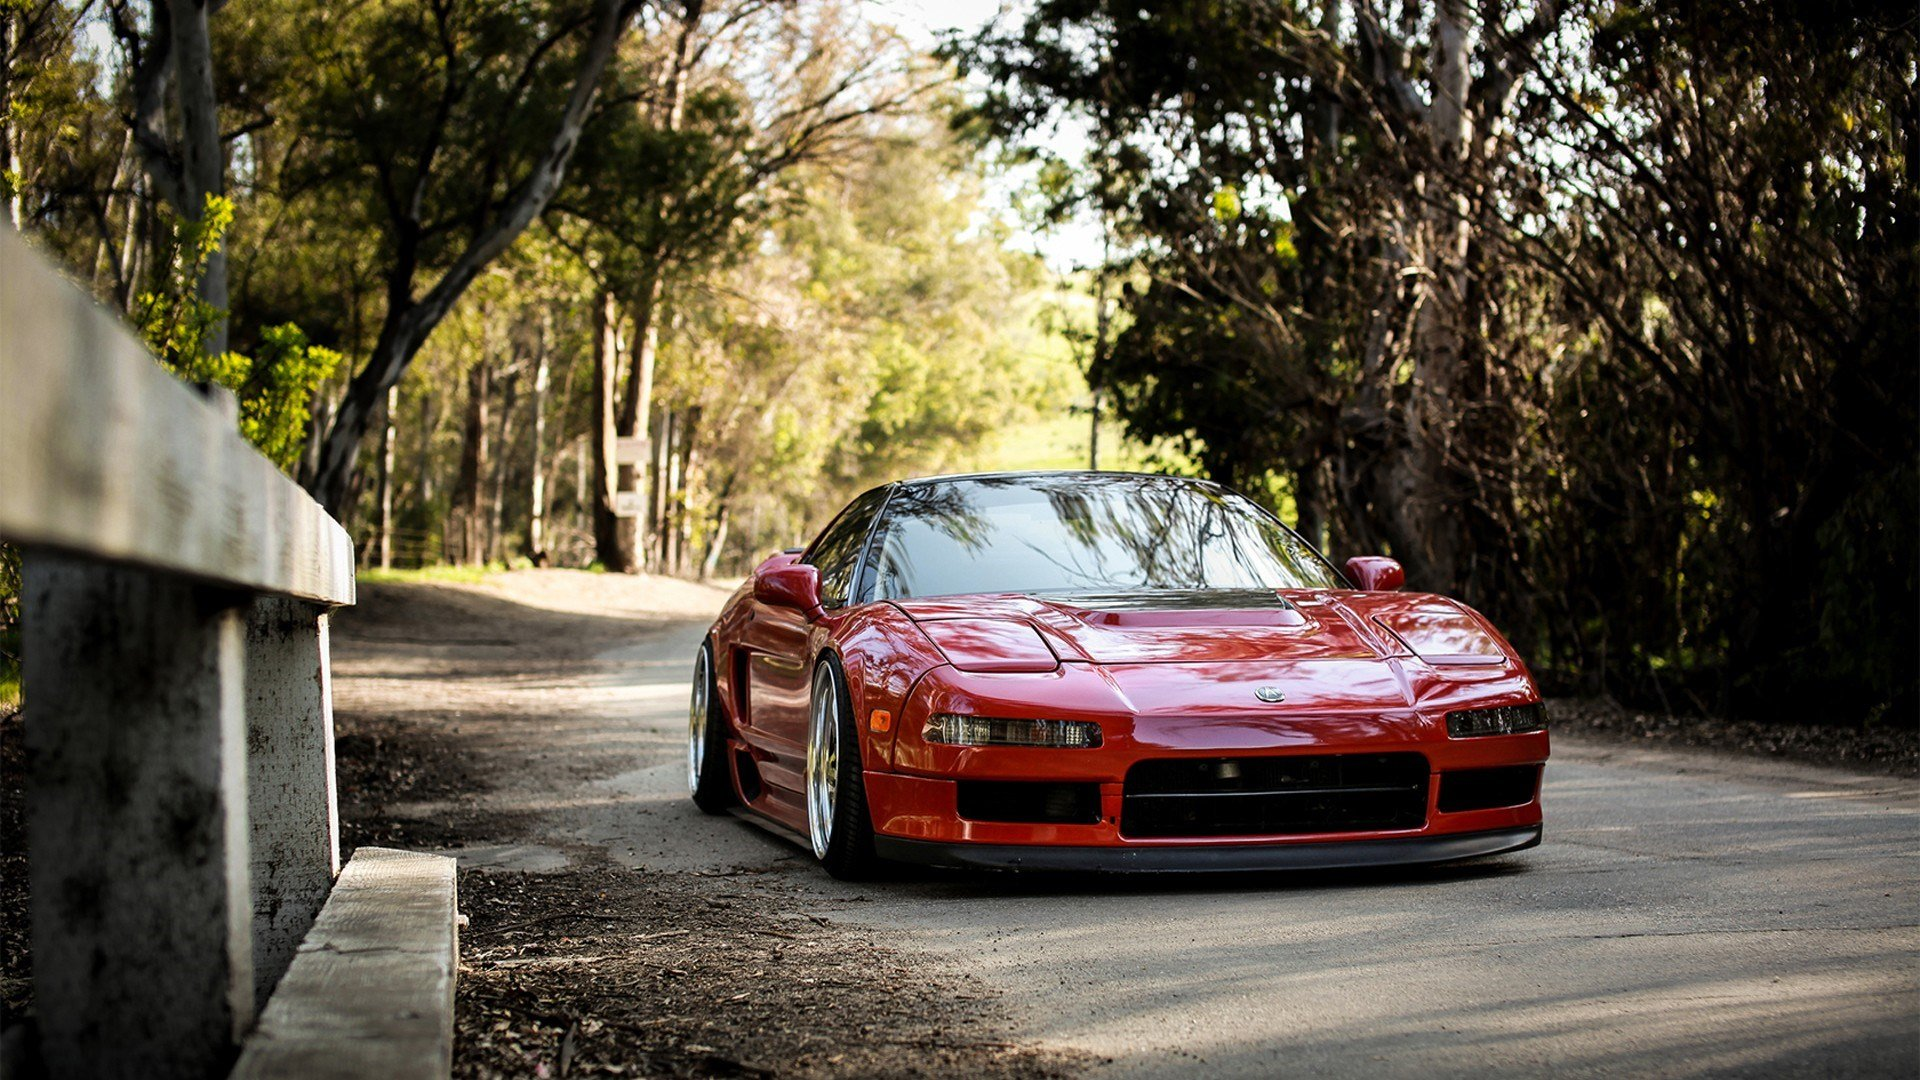 Acura NSX wallpapers HD for desktop backgrounds 1920x1080